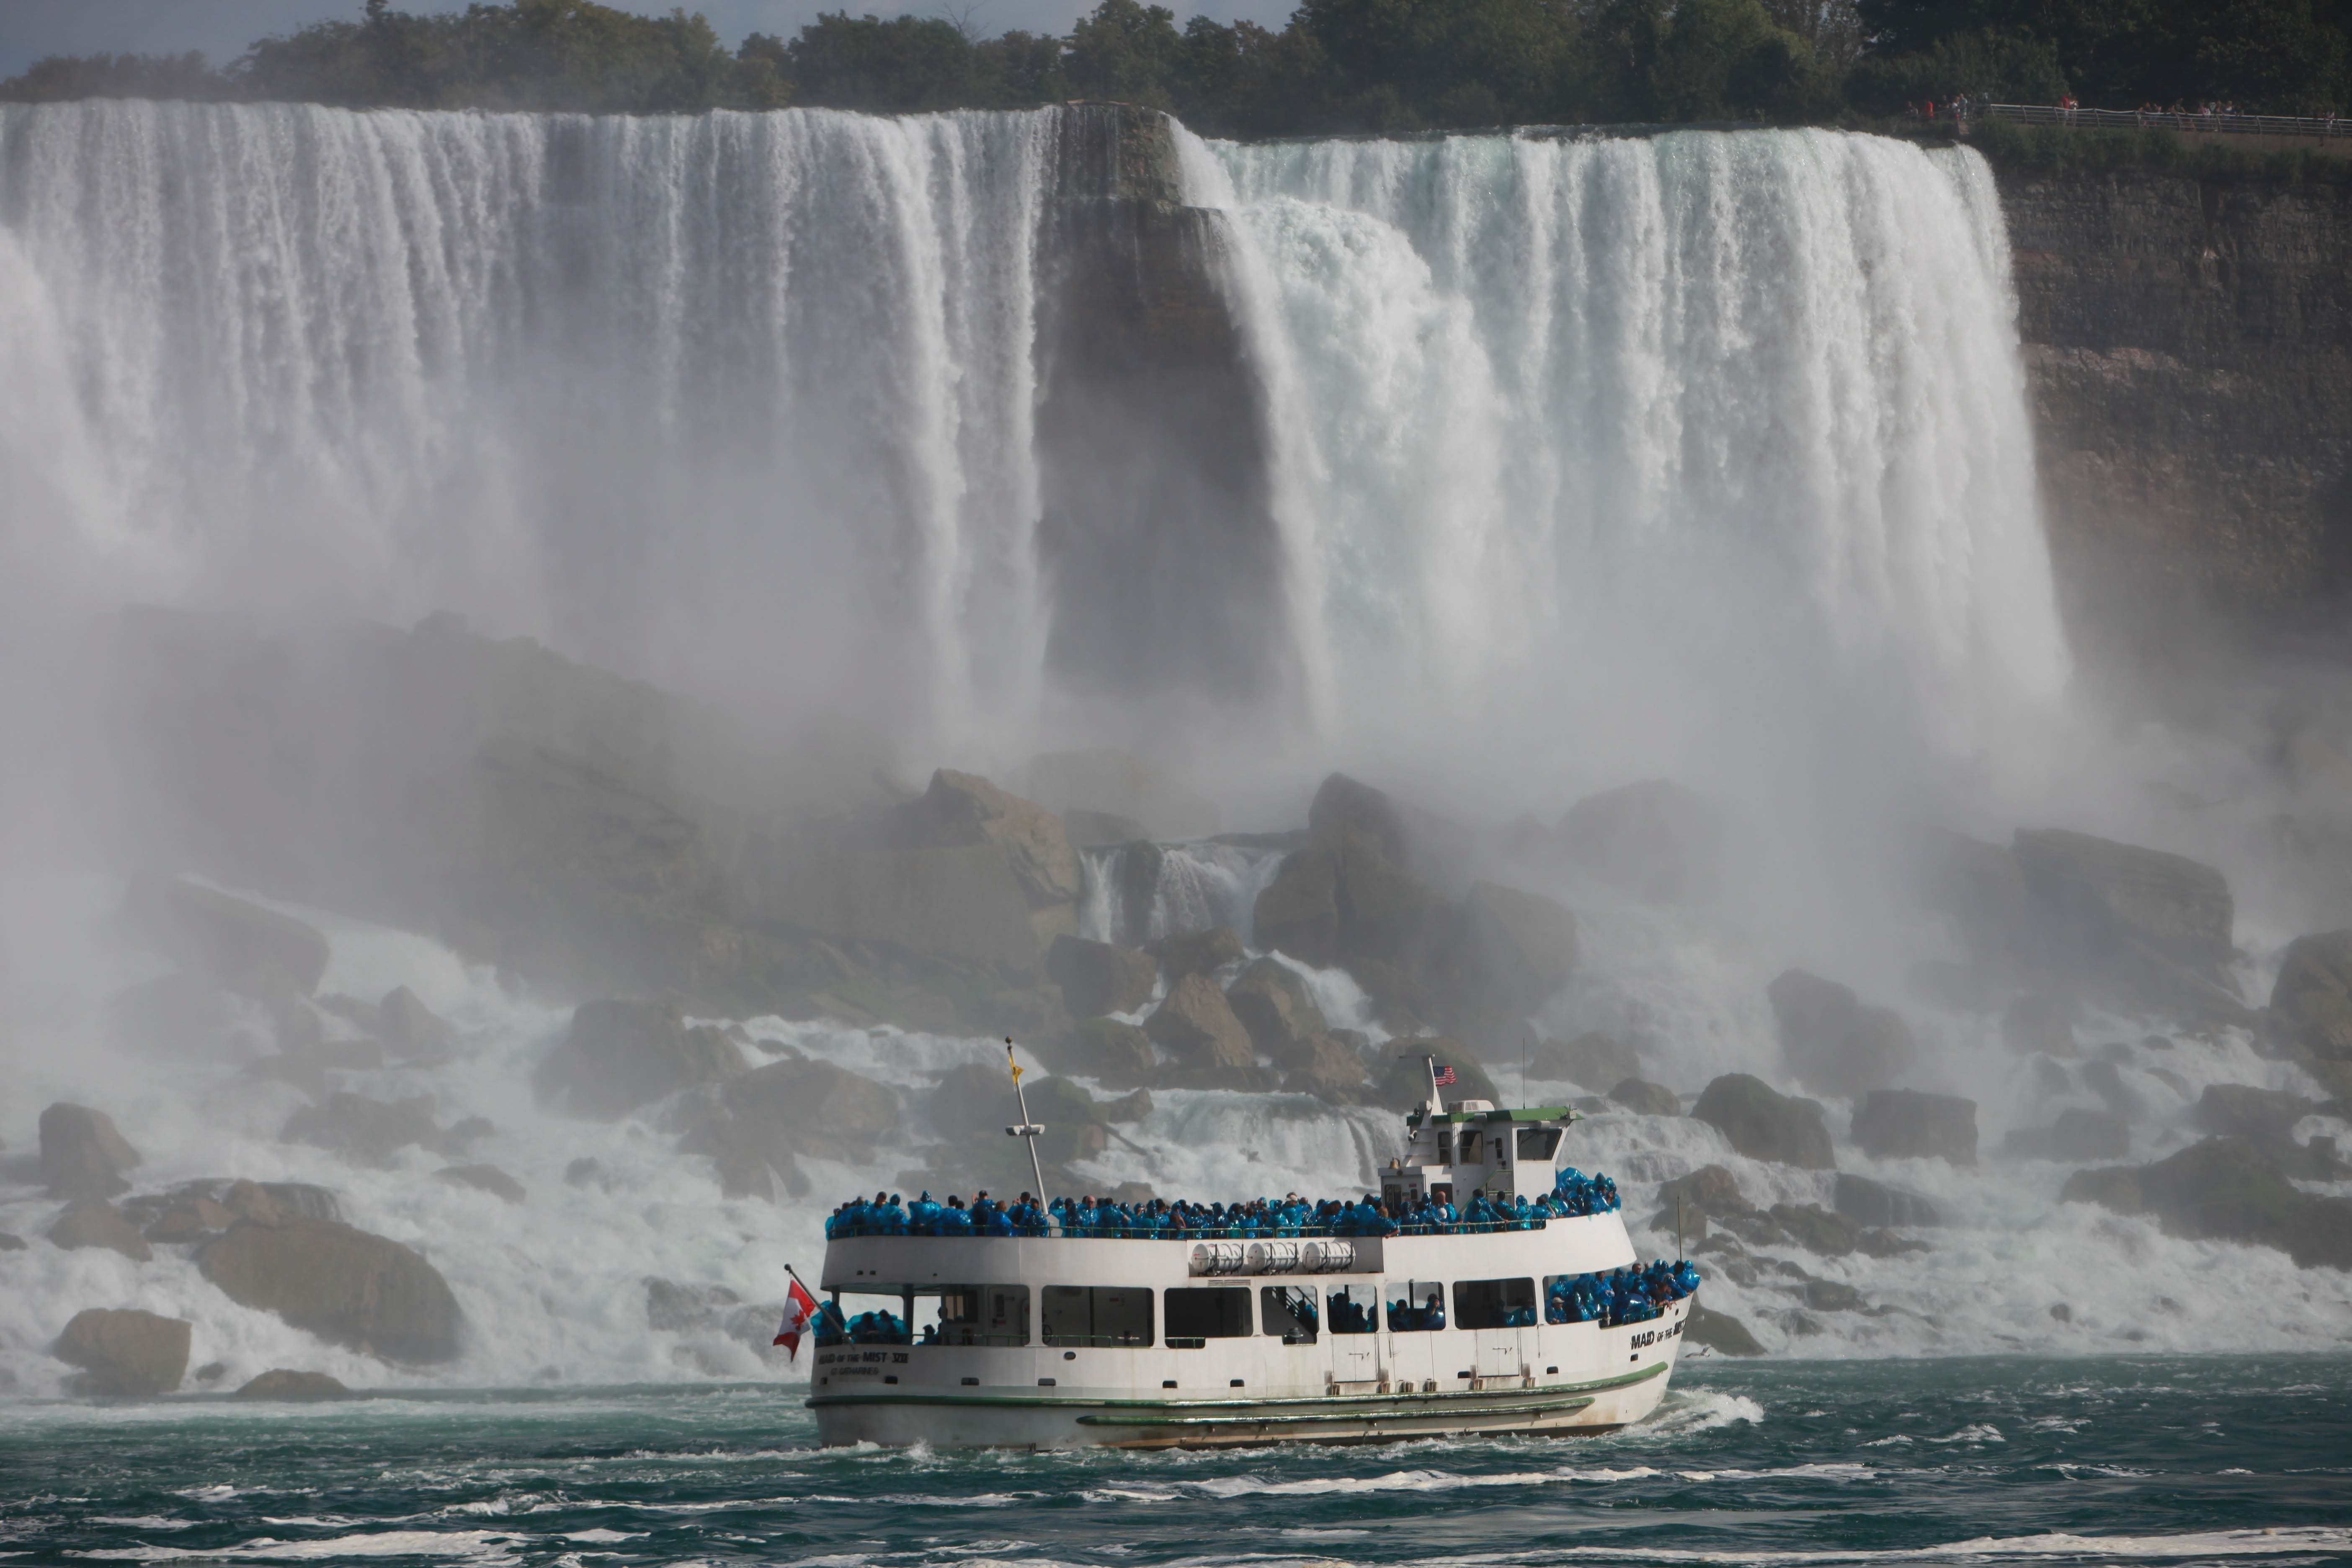 A State Supreme Court judge today put a temporarily halt to construction on the Maid of the Mist's new boat storage facility in the Niagara Gorge. (Sharon Cantillon / Buffalo News file photo)